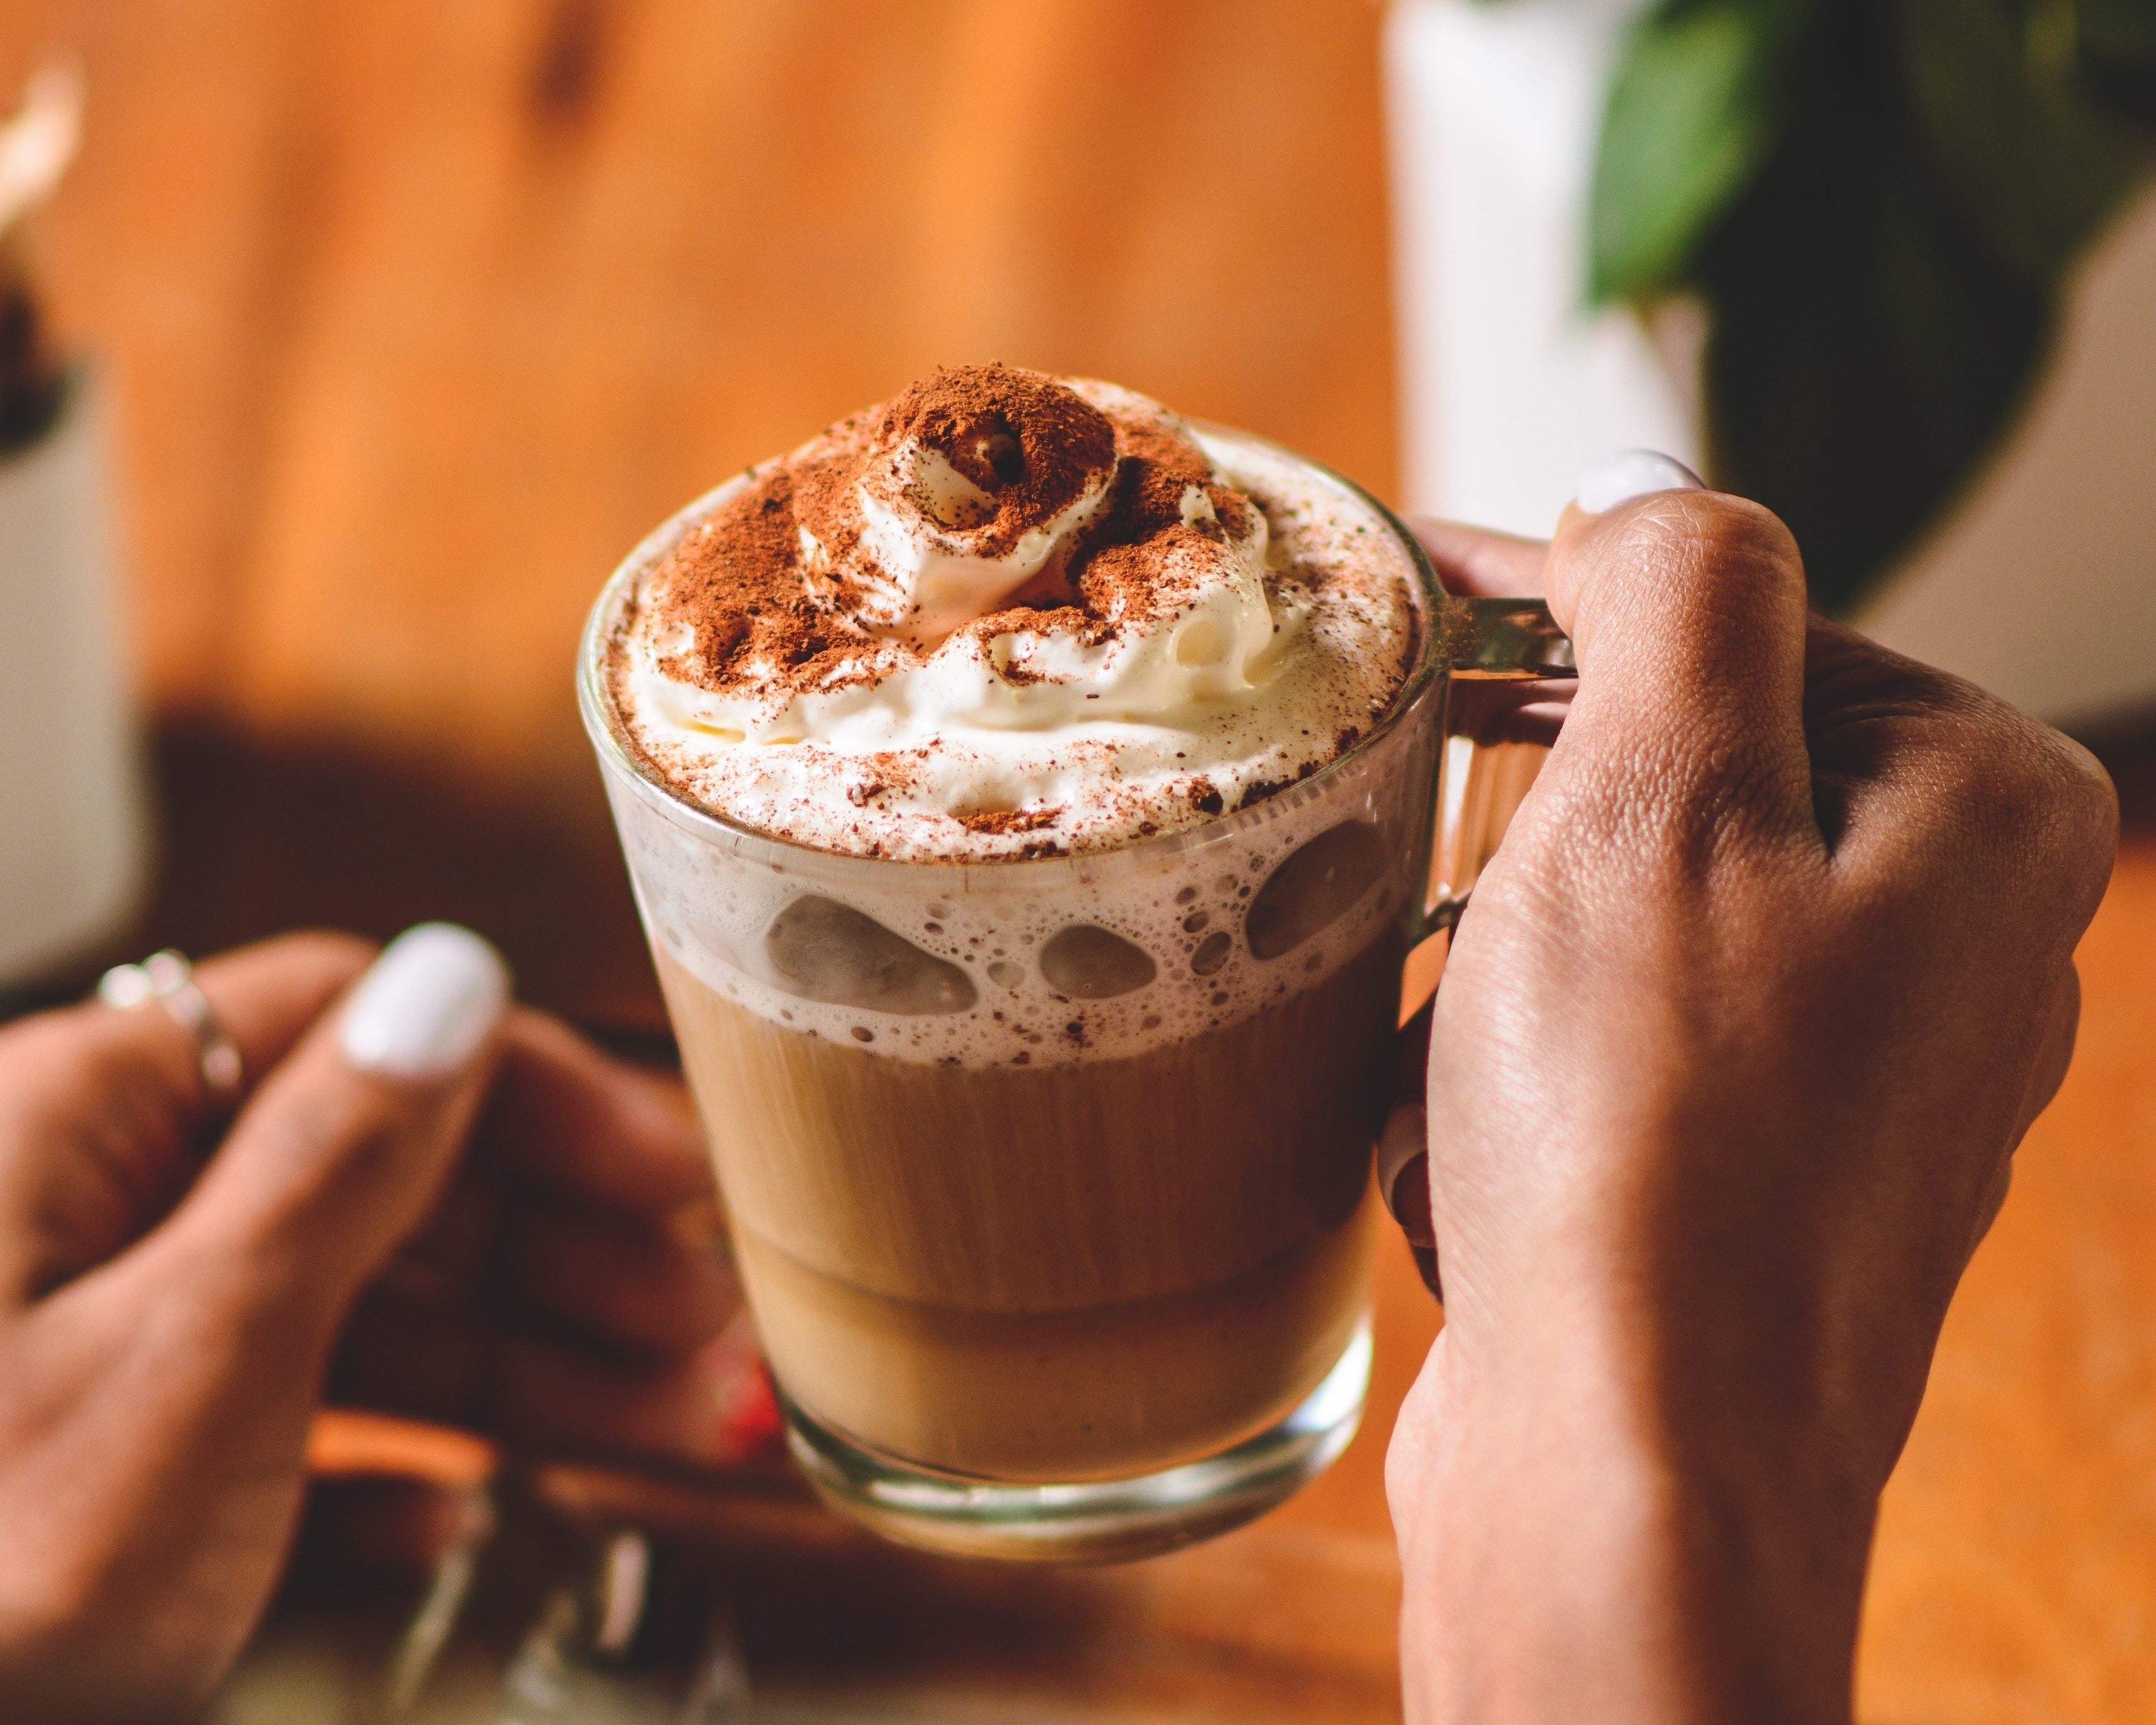 5 Hot Chocolate Recipes That No One Will Be Able To Resist